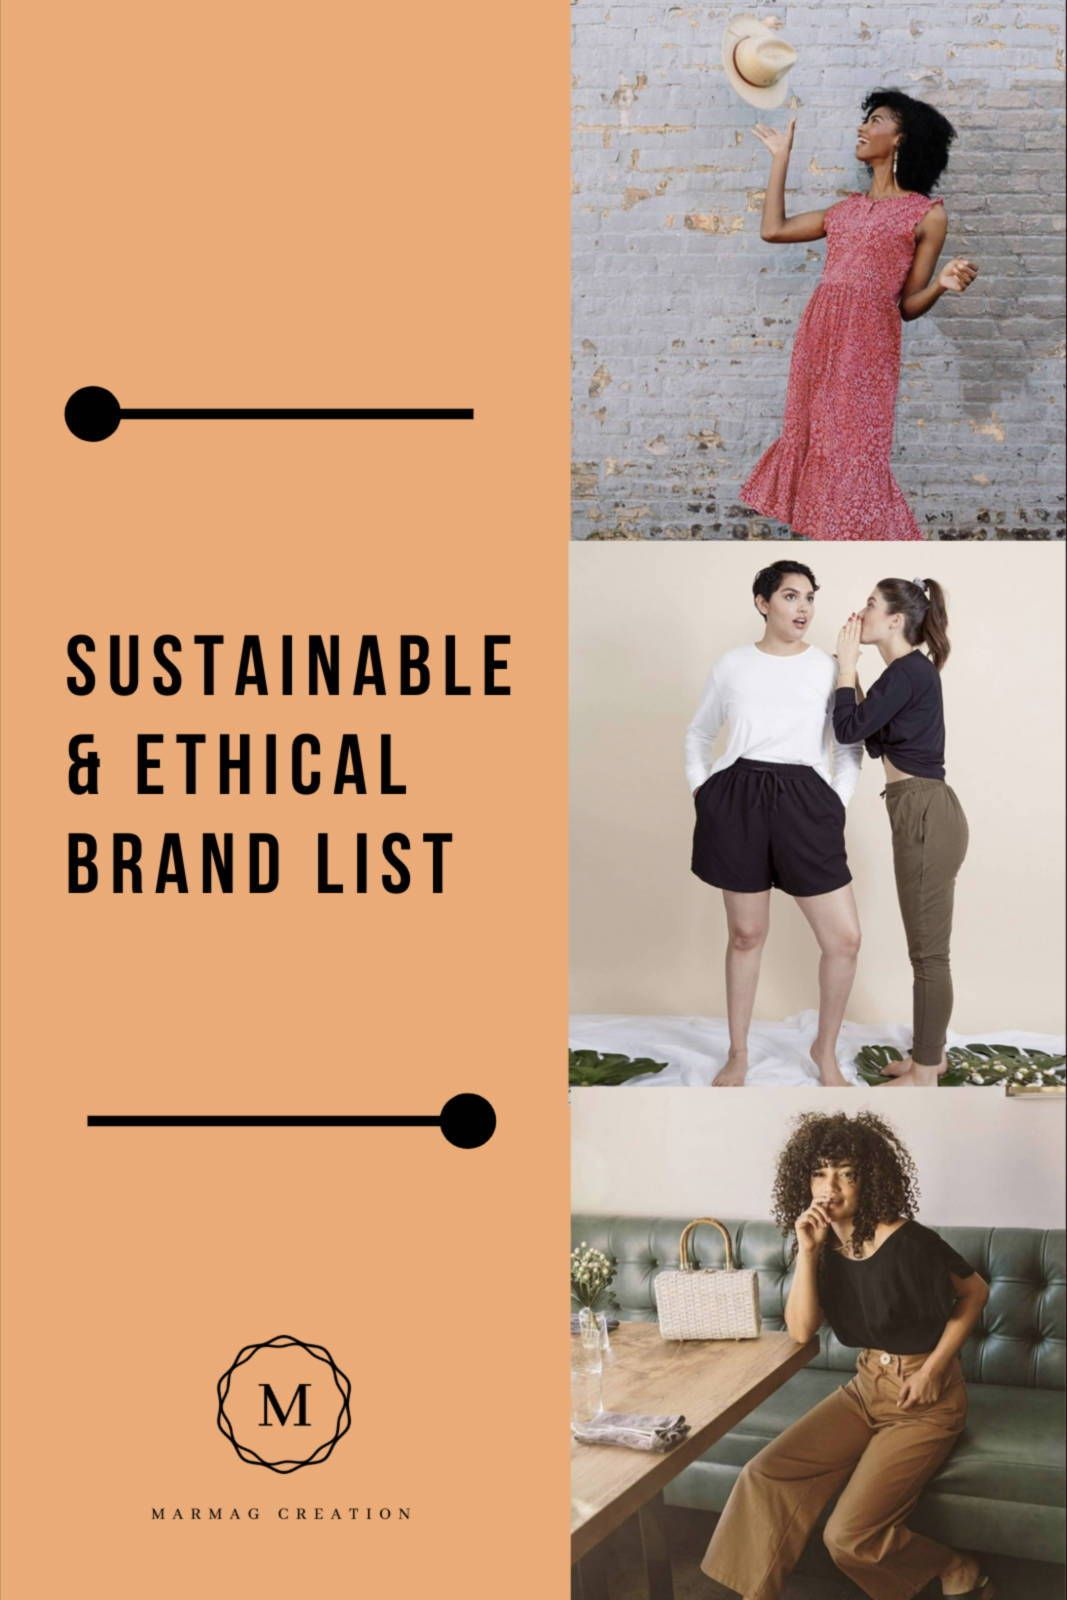 Ethical brand lists